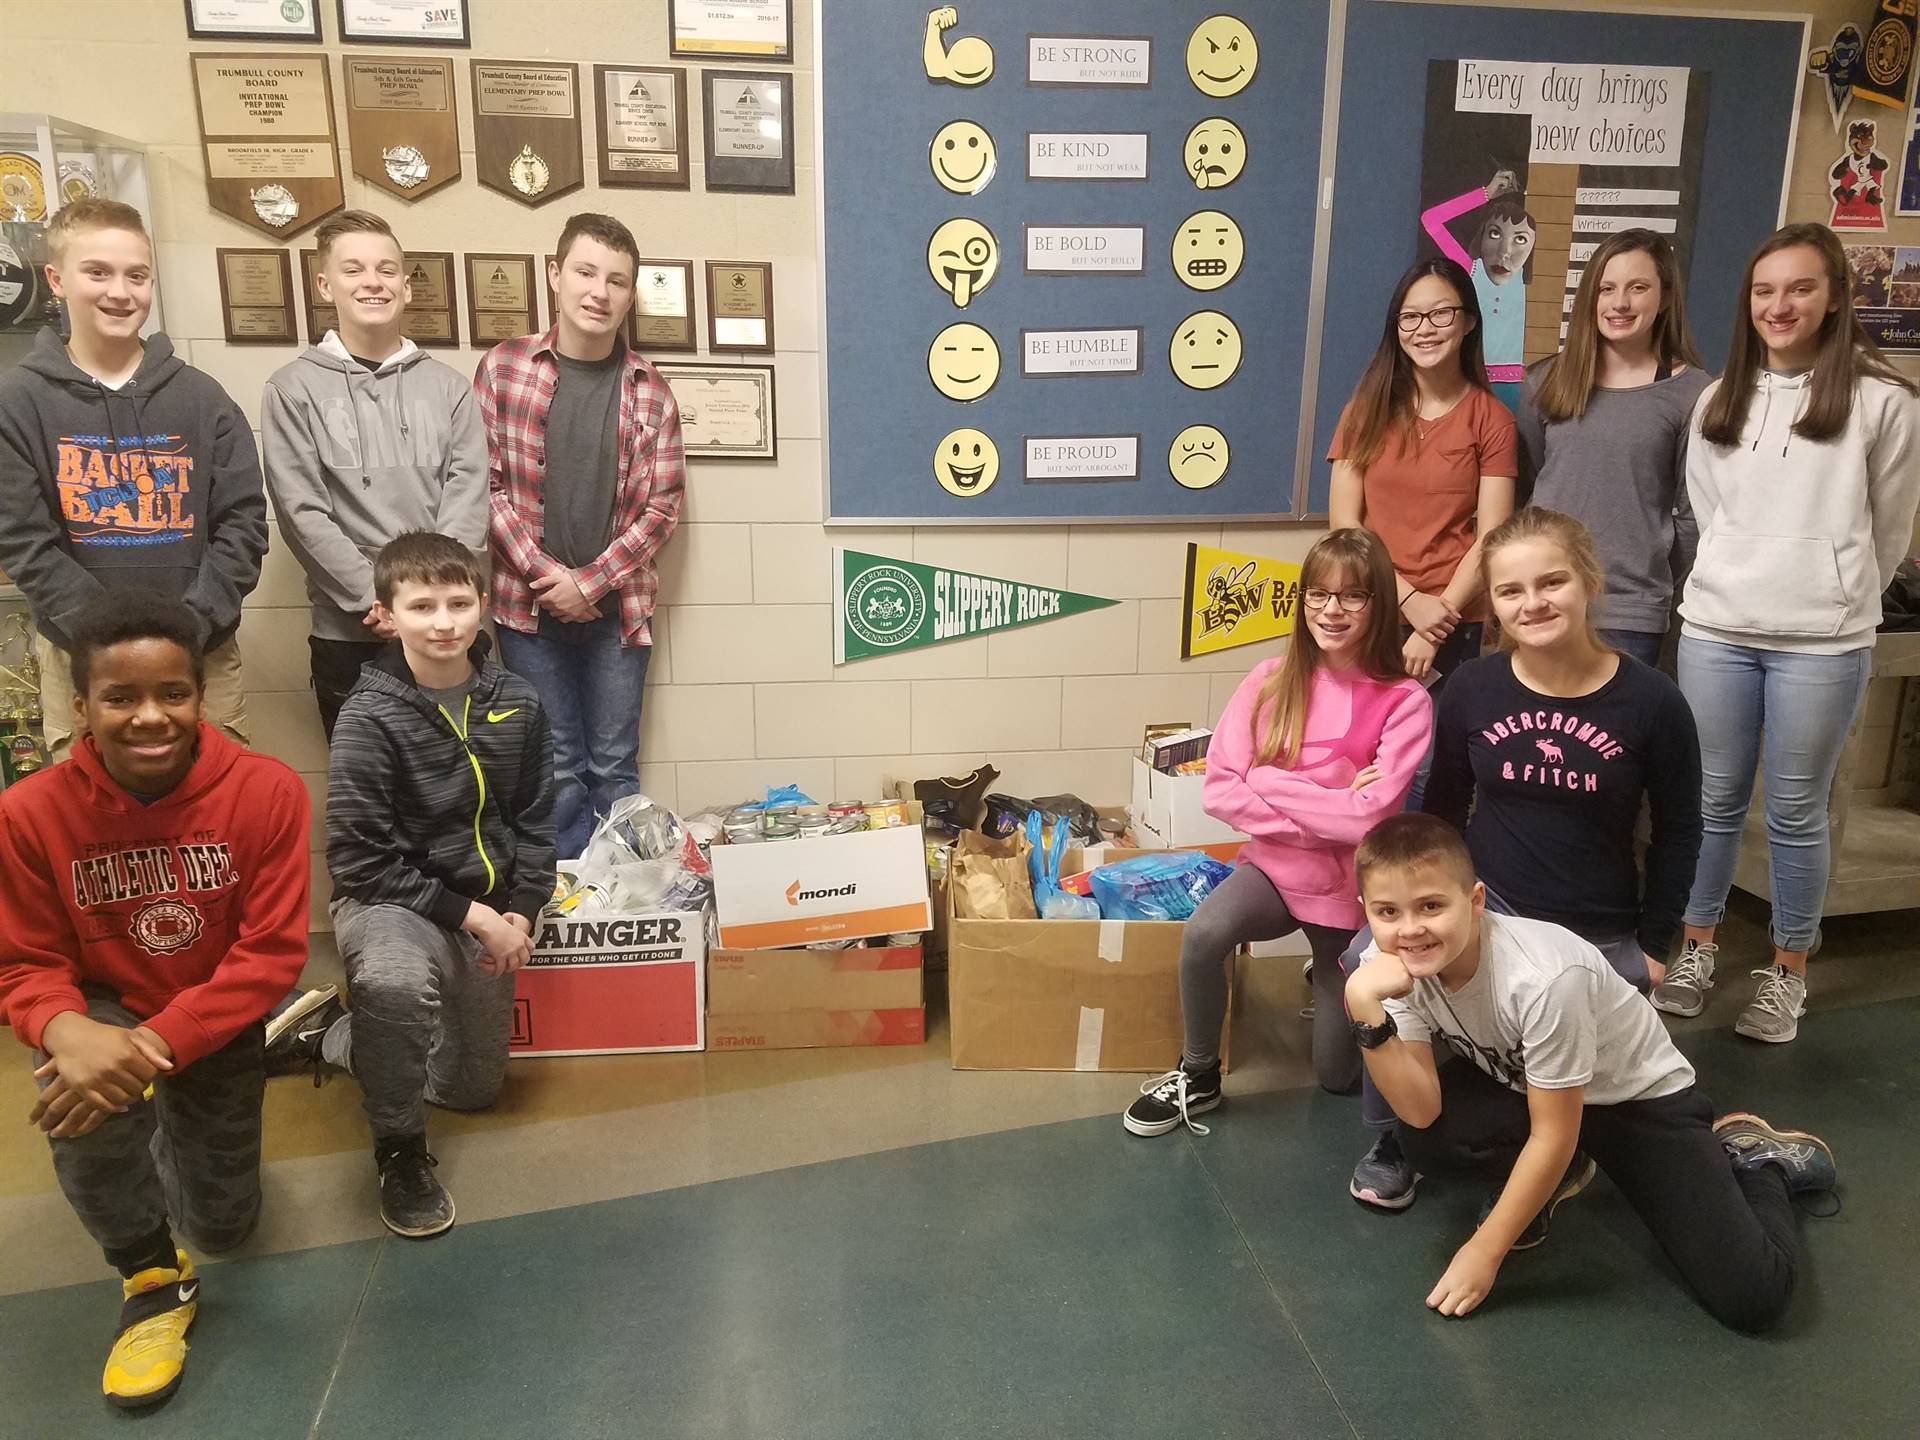 Student Council sponsored food drive helped provide Thanksgiving dinners for Community Families.